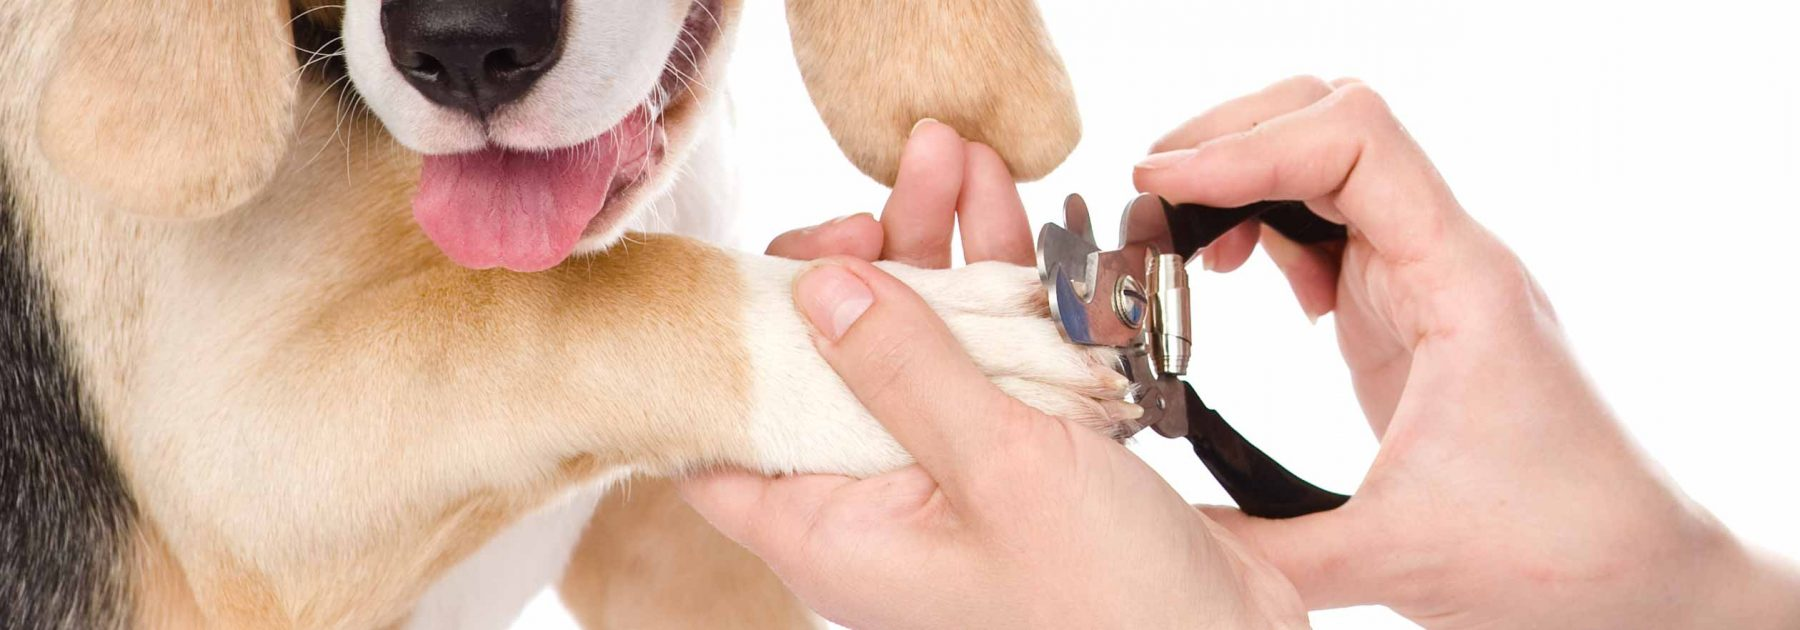 Dog getting its nails trimmed